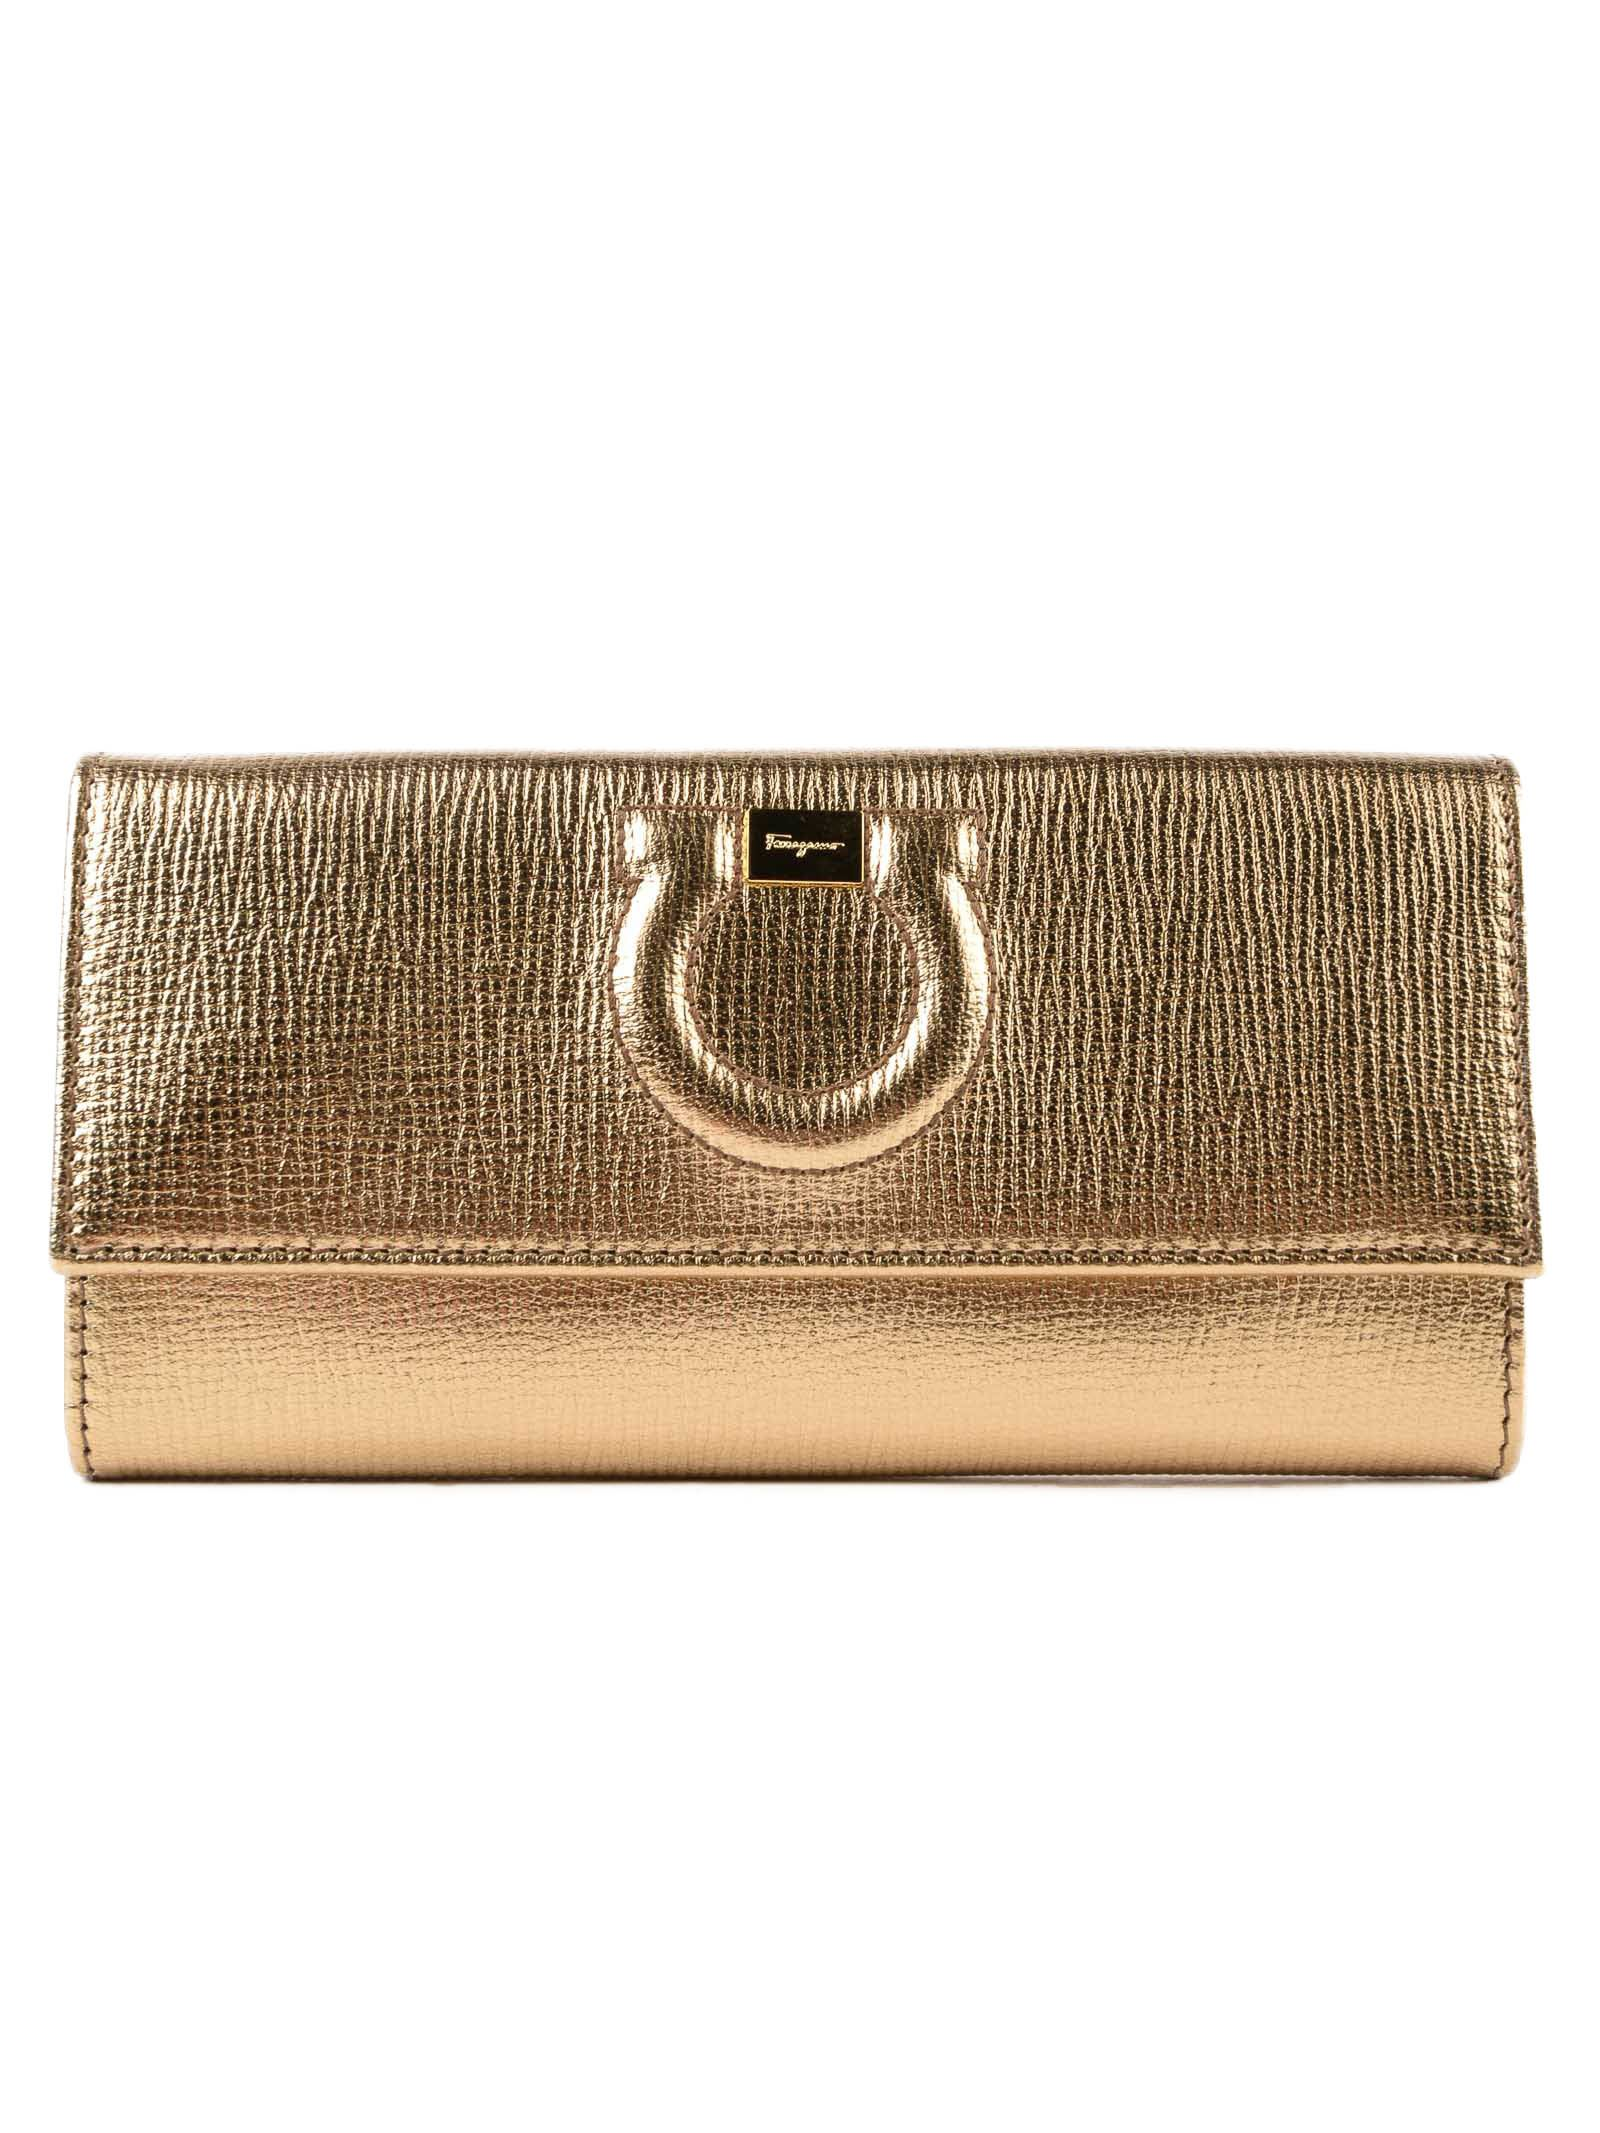 Salvatore Ferragamo Gancio City Continental Wallet